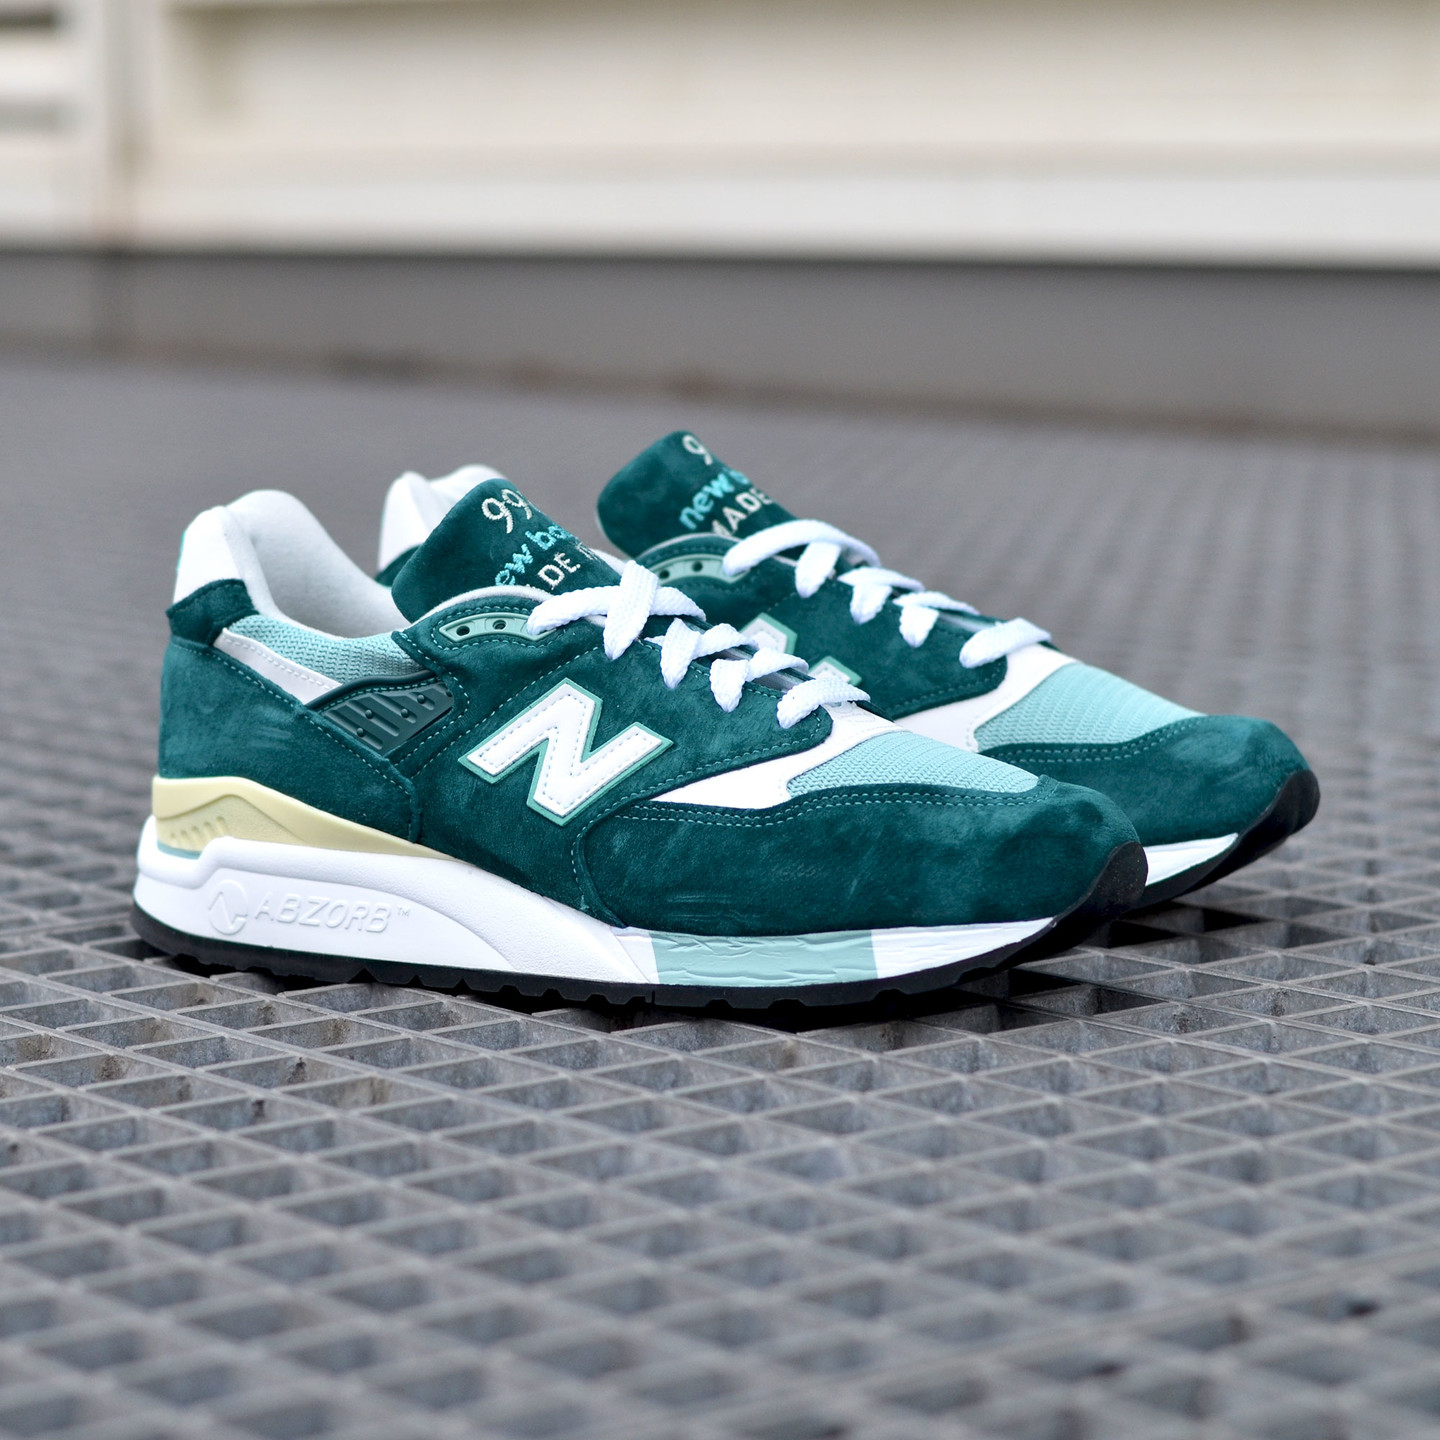 New Balance M998 Made in USA Sea Green / White M998CSAM-43